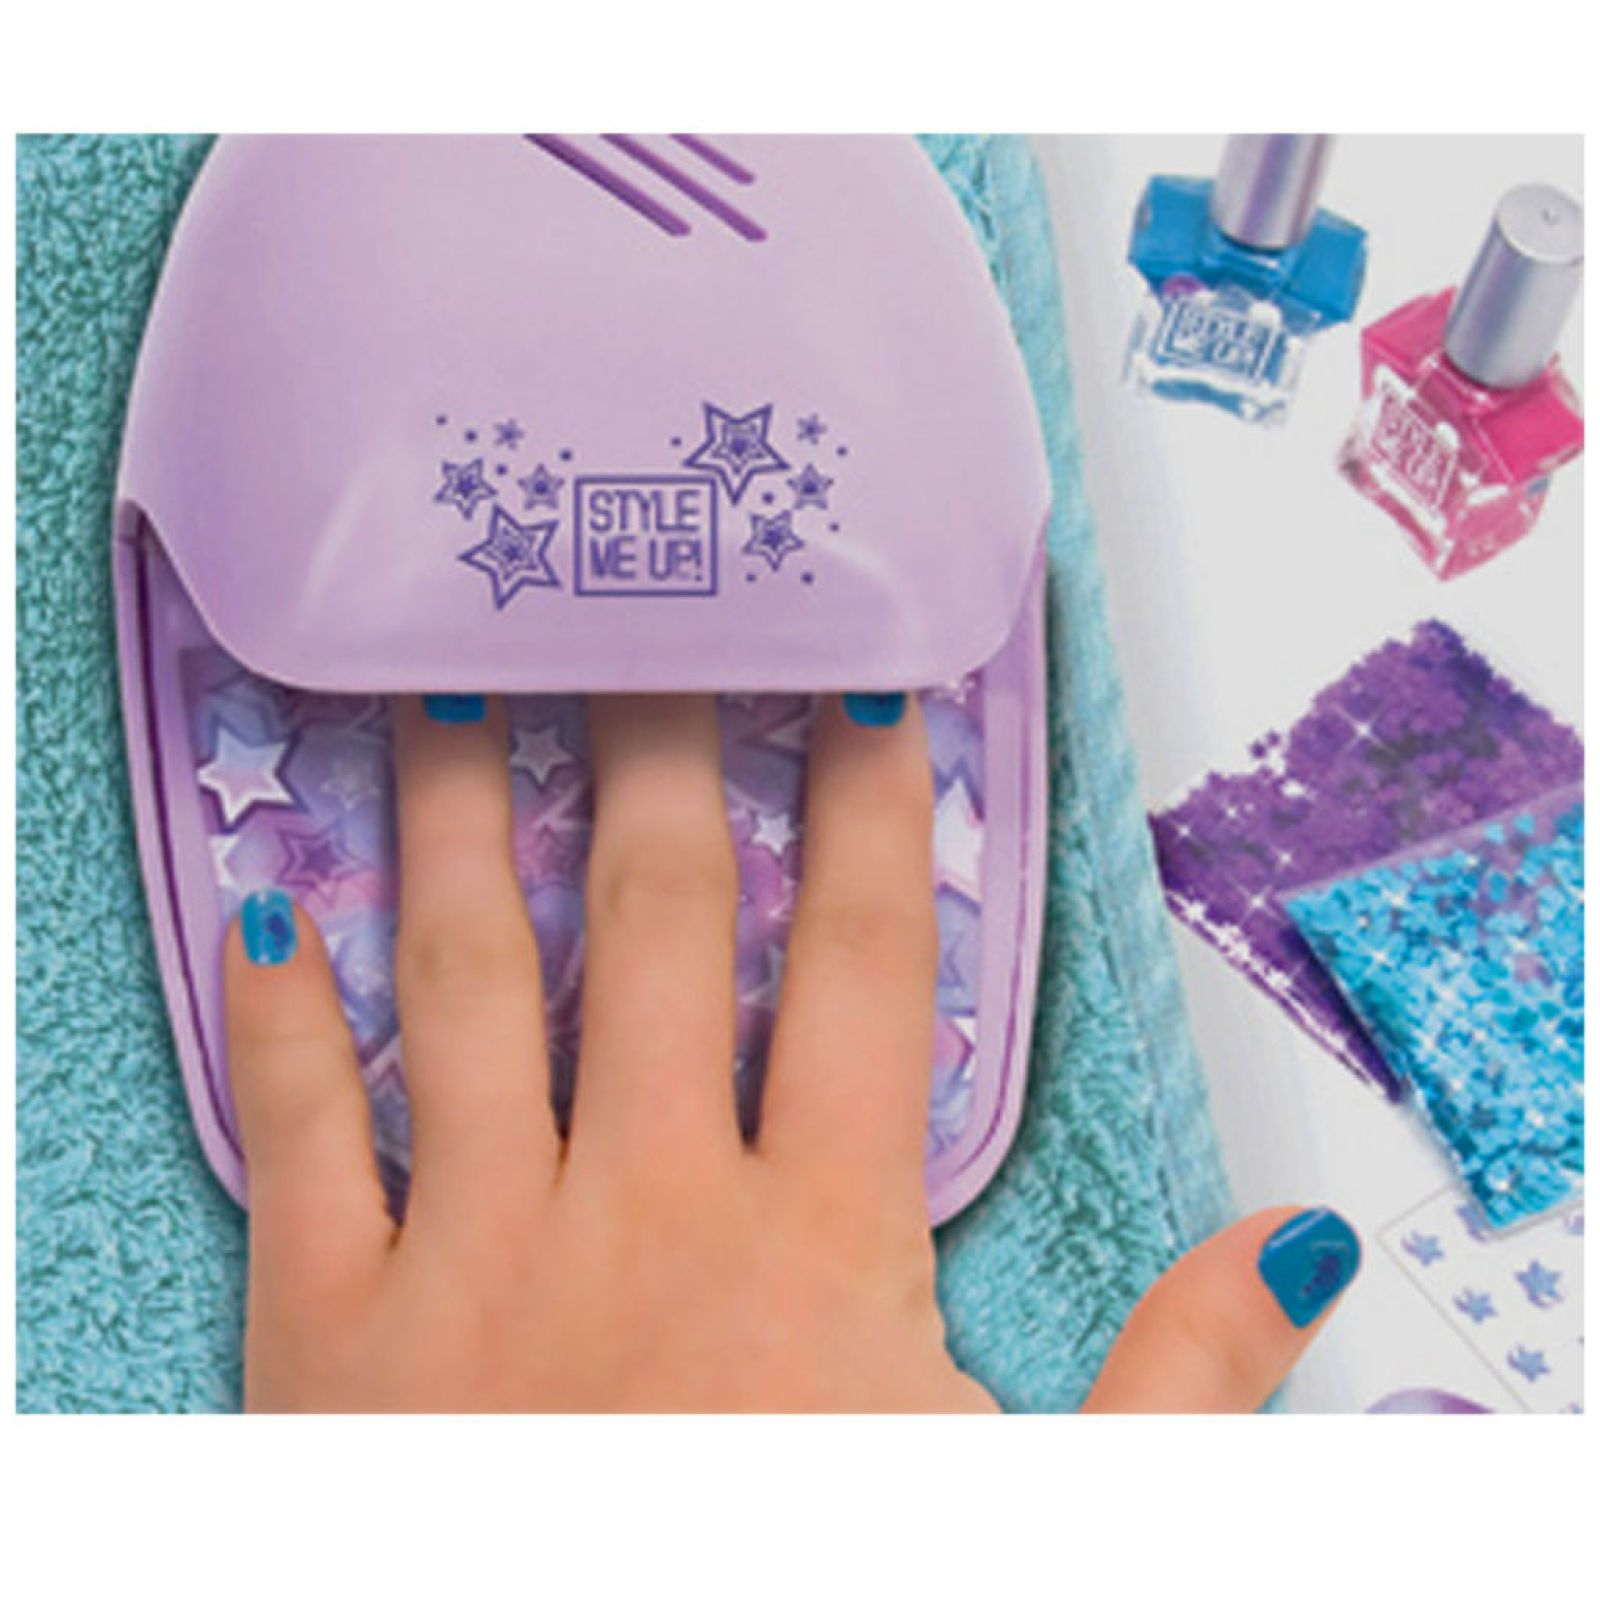 Style Me Up Deluxe Nail Salon Kit  Finger nail and toenail